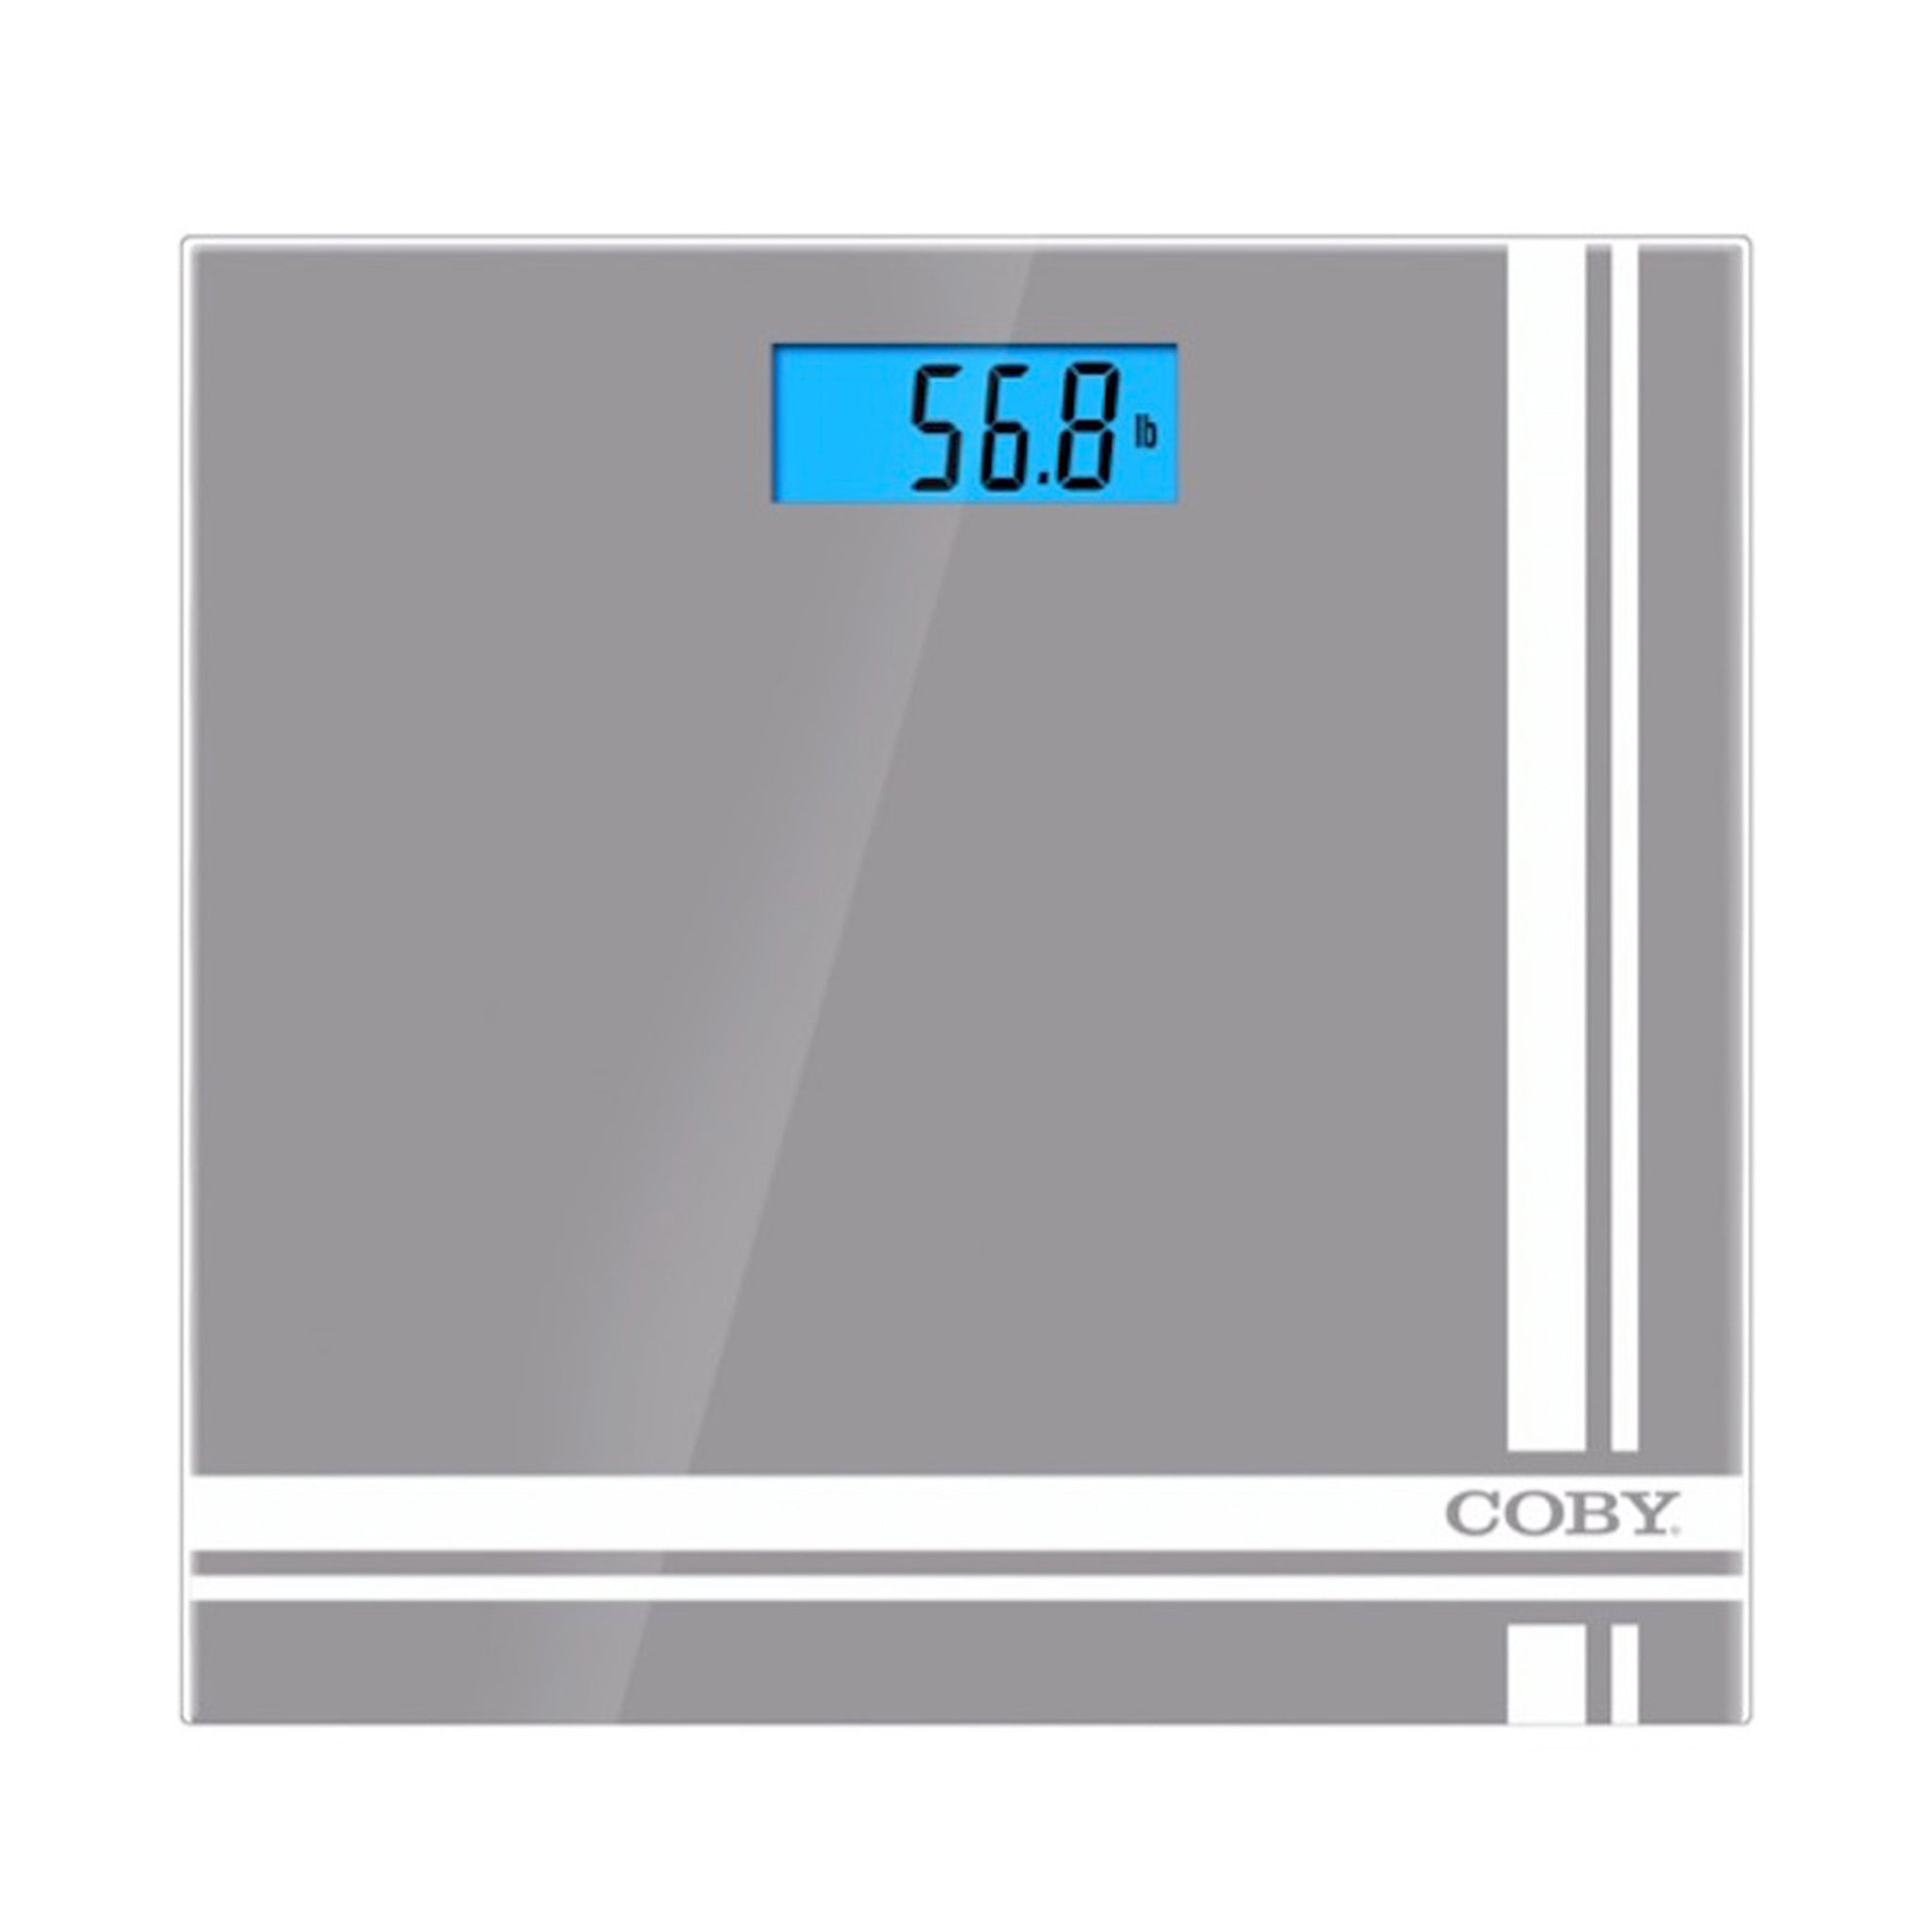 COBY Glass Digital Scale with Blue LCD Display